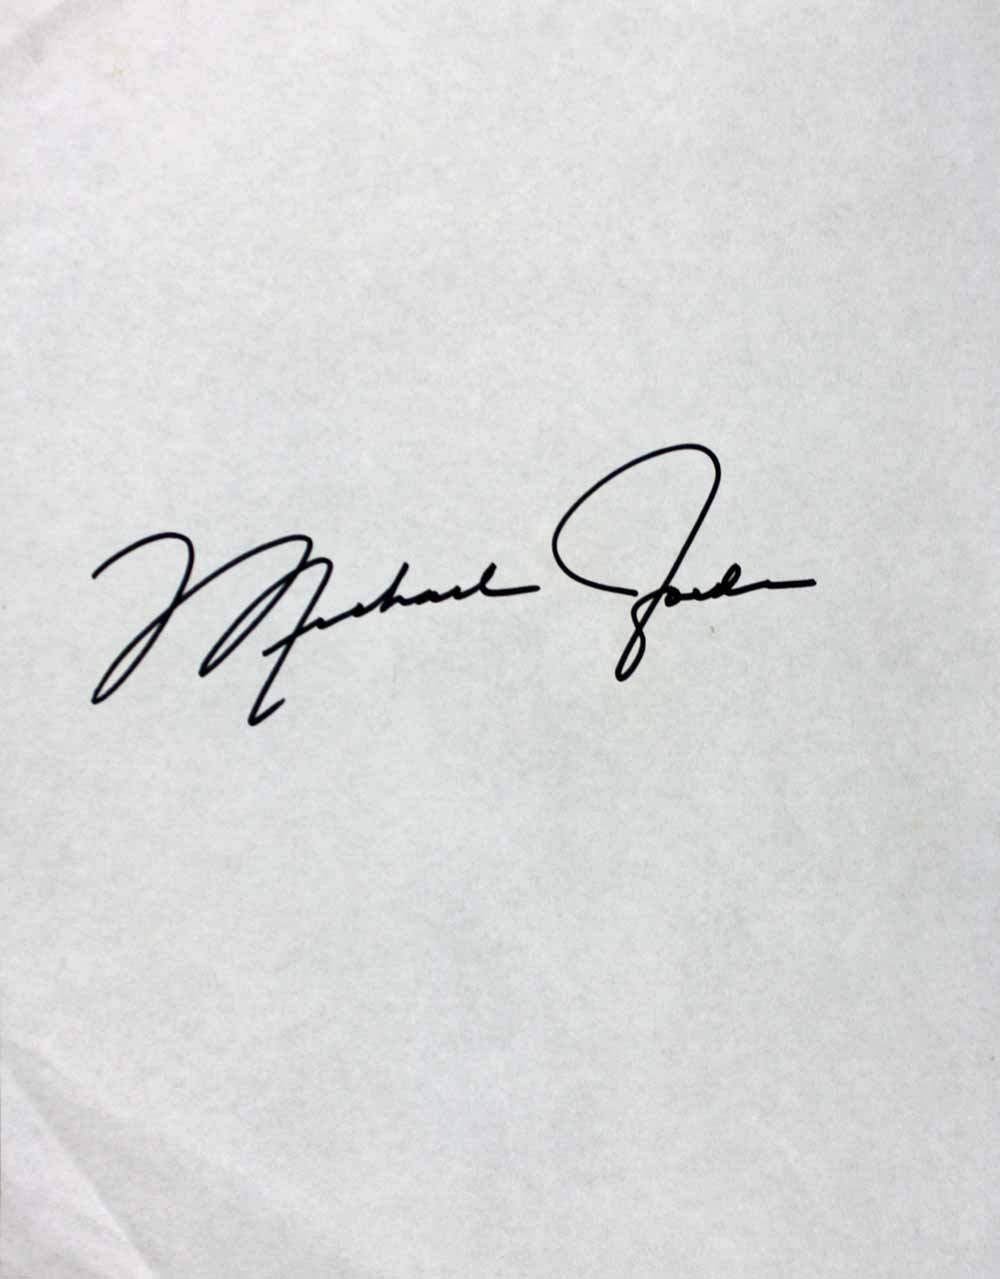 Michael Jordan Signed 8 X 11 Sheet With Rare Every Letter Signature Ex